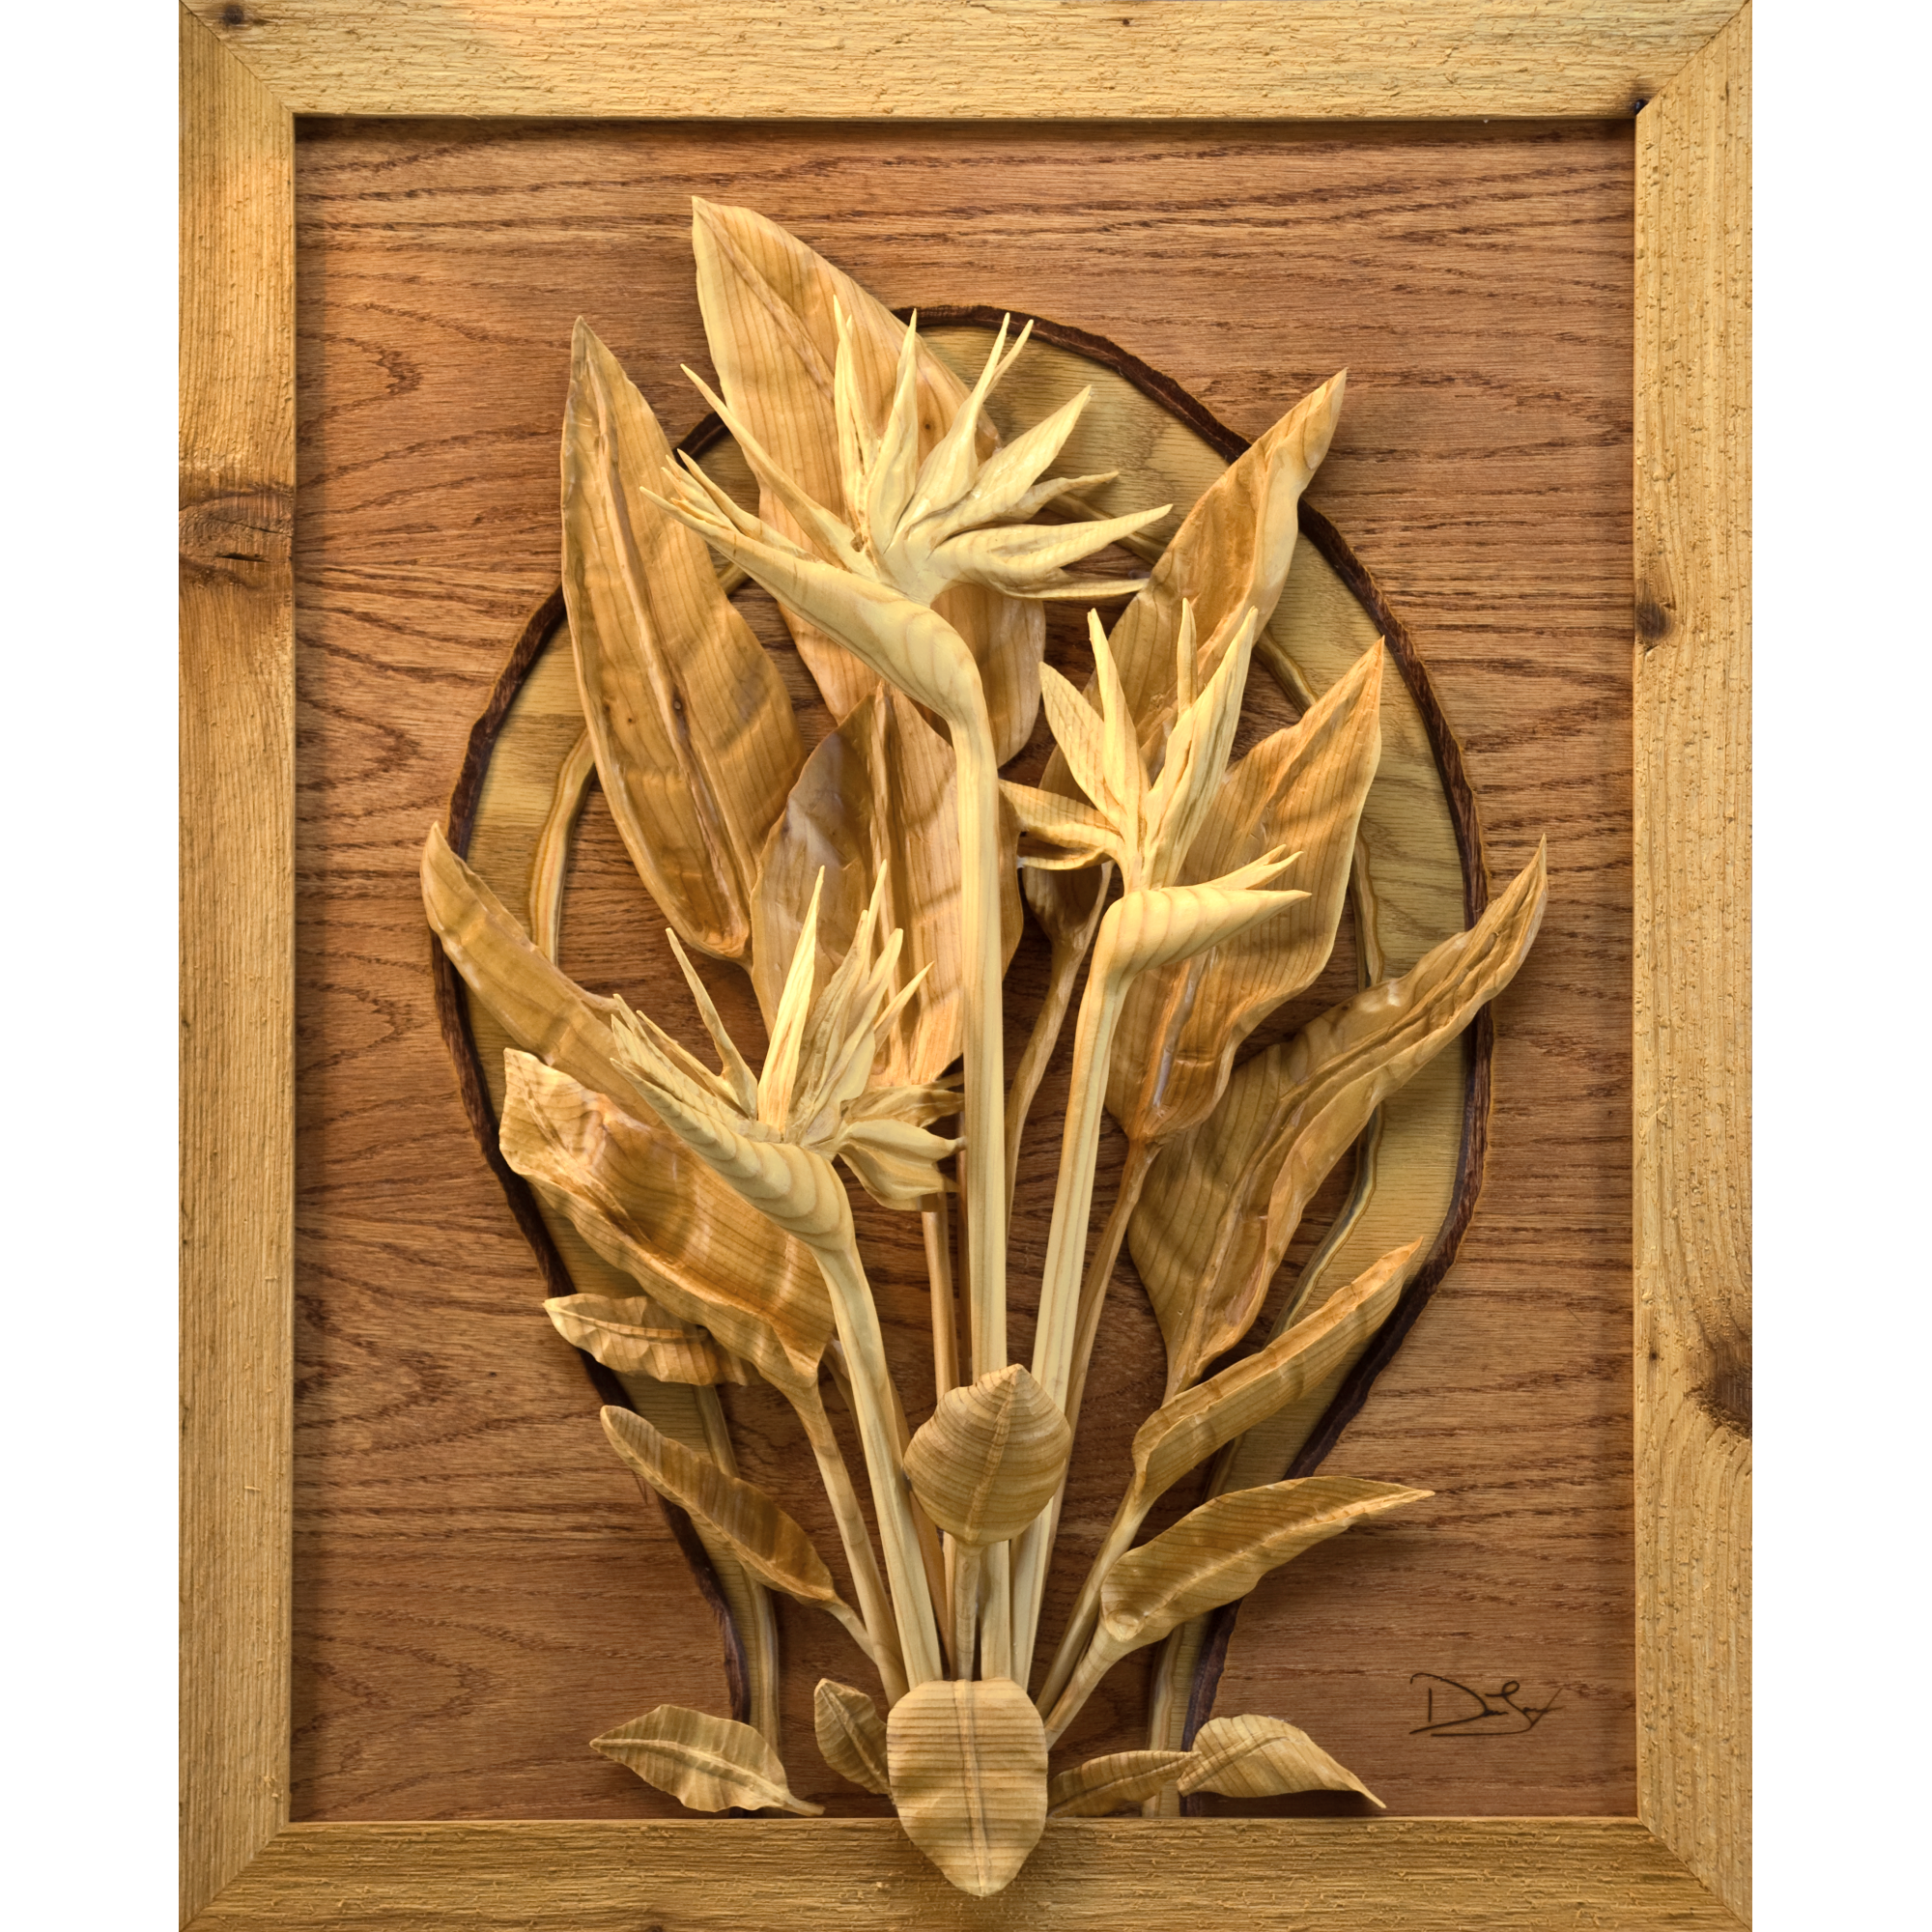 Bird of paradise original intricate wood relief carving